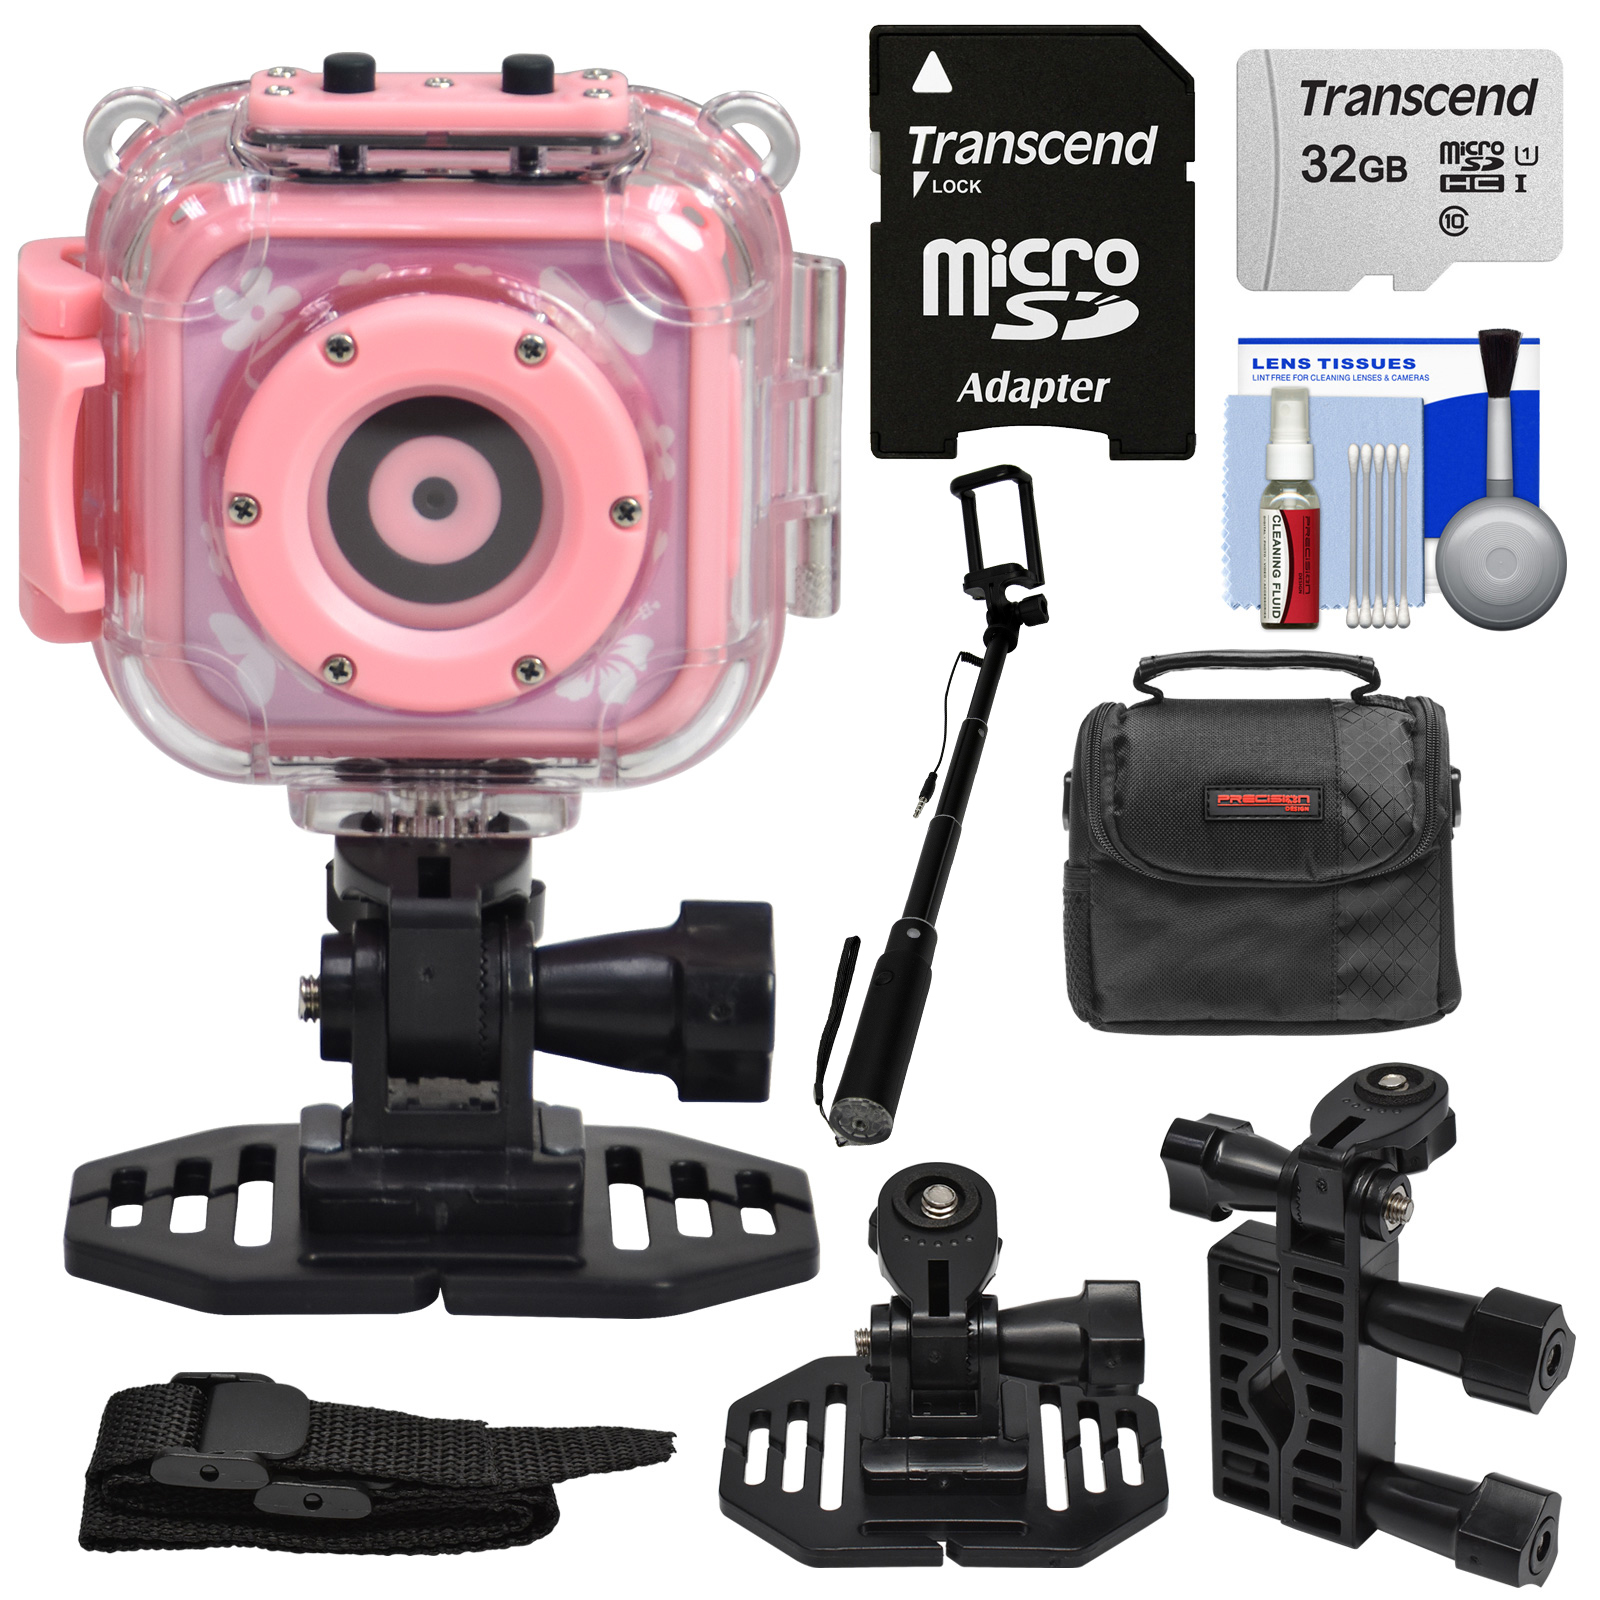 Precision Design K1 Kids HD Action Camera Camcorder (Pink) with Helmet + Handlebar Bike Mounts + 32GB Card + Case + Selfie Stick + Kit